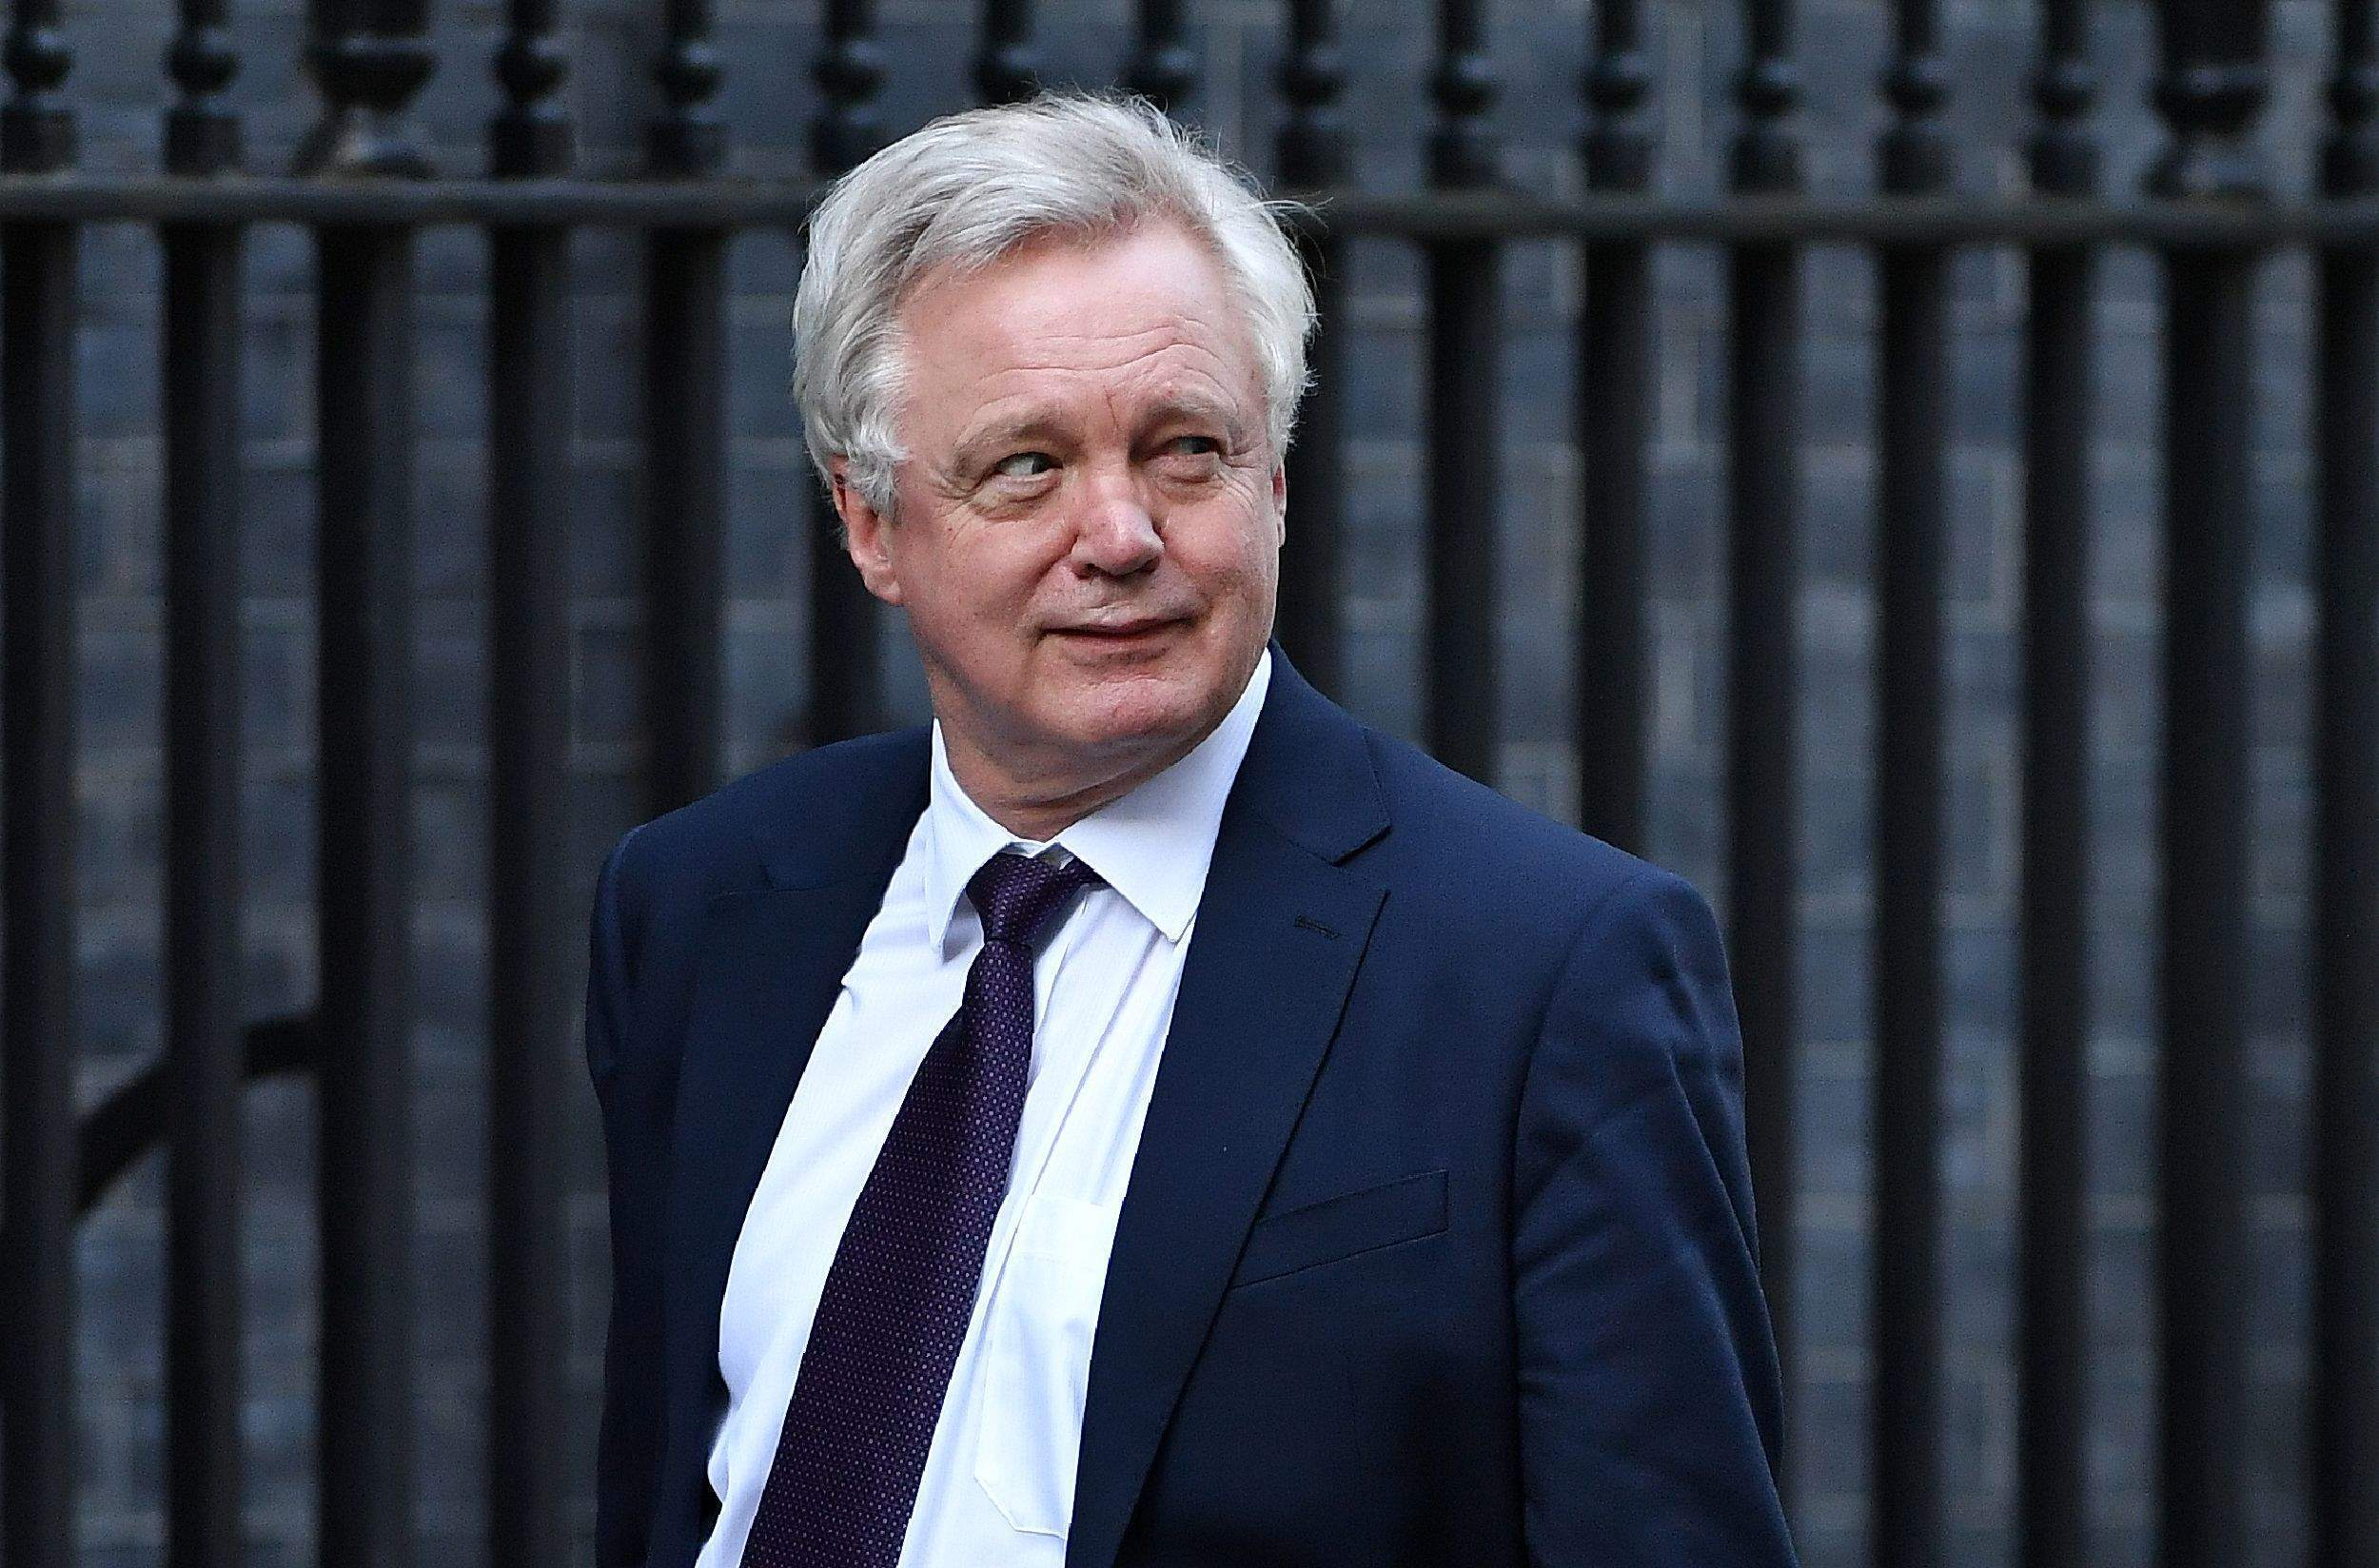 Commons Confidential: David Davis's lonely meal for one